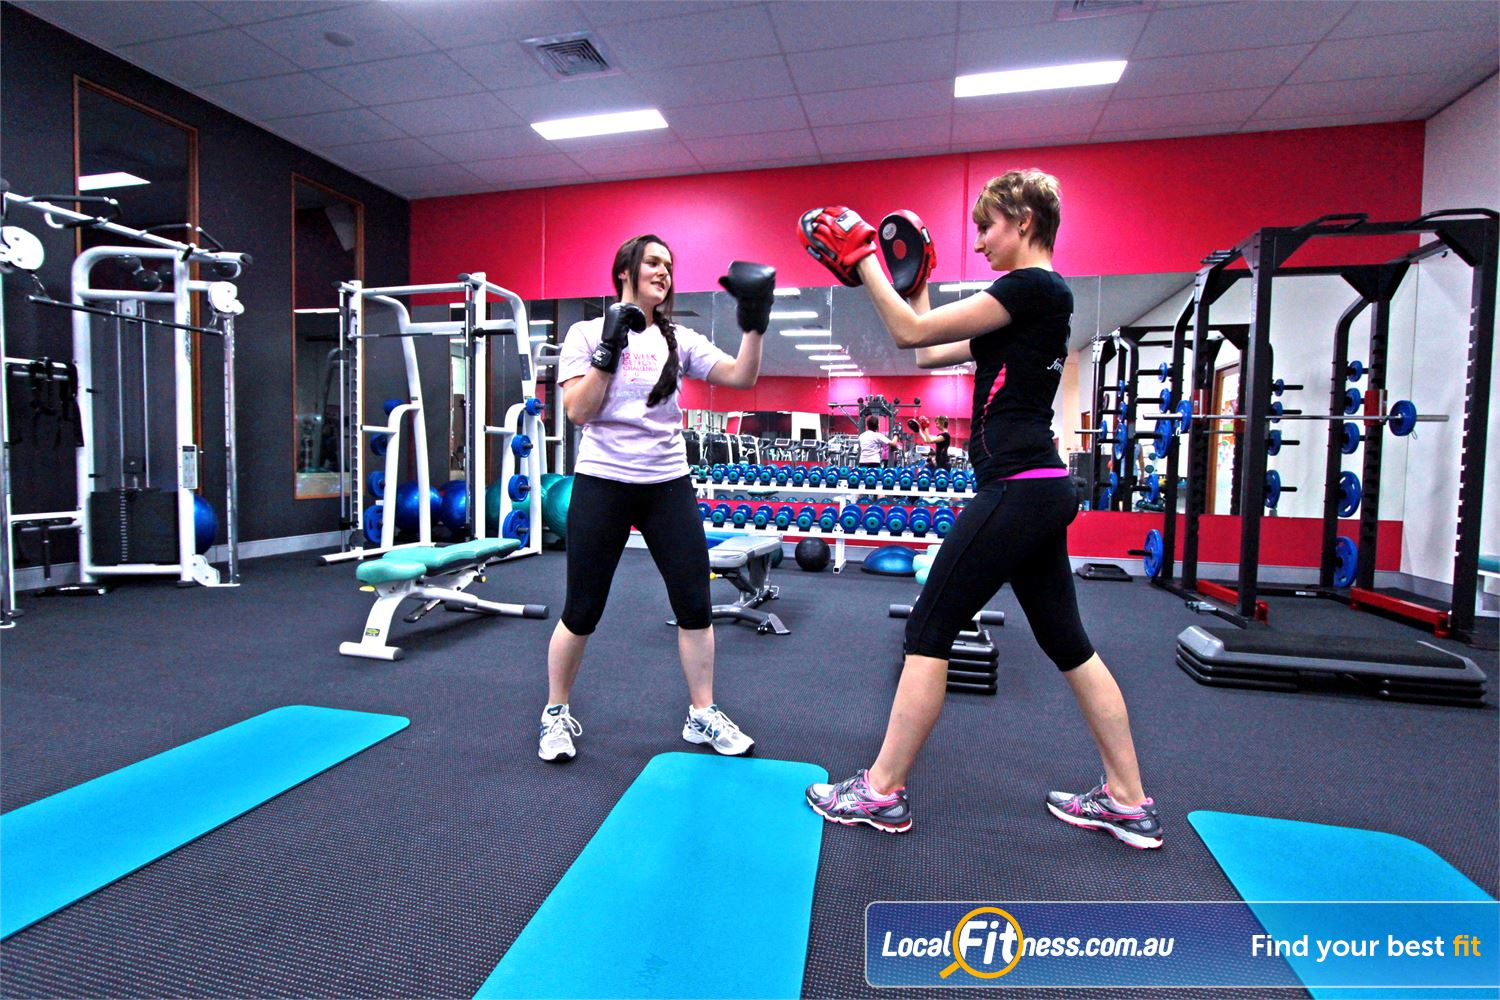 Fernwood Fitness Near Tremont Lose weight fast with our energetic Ferntree Gully boxing workouts.